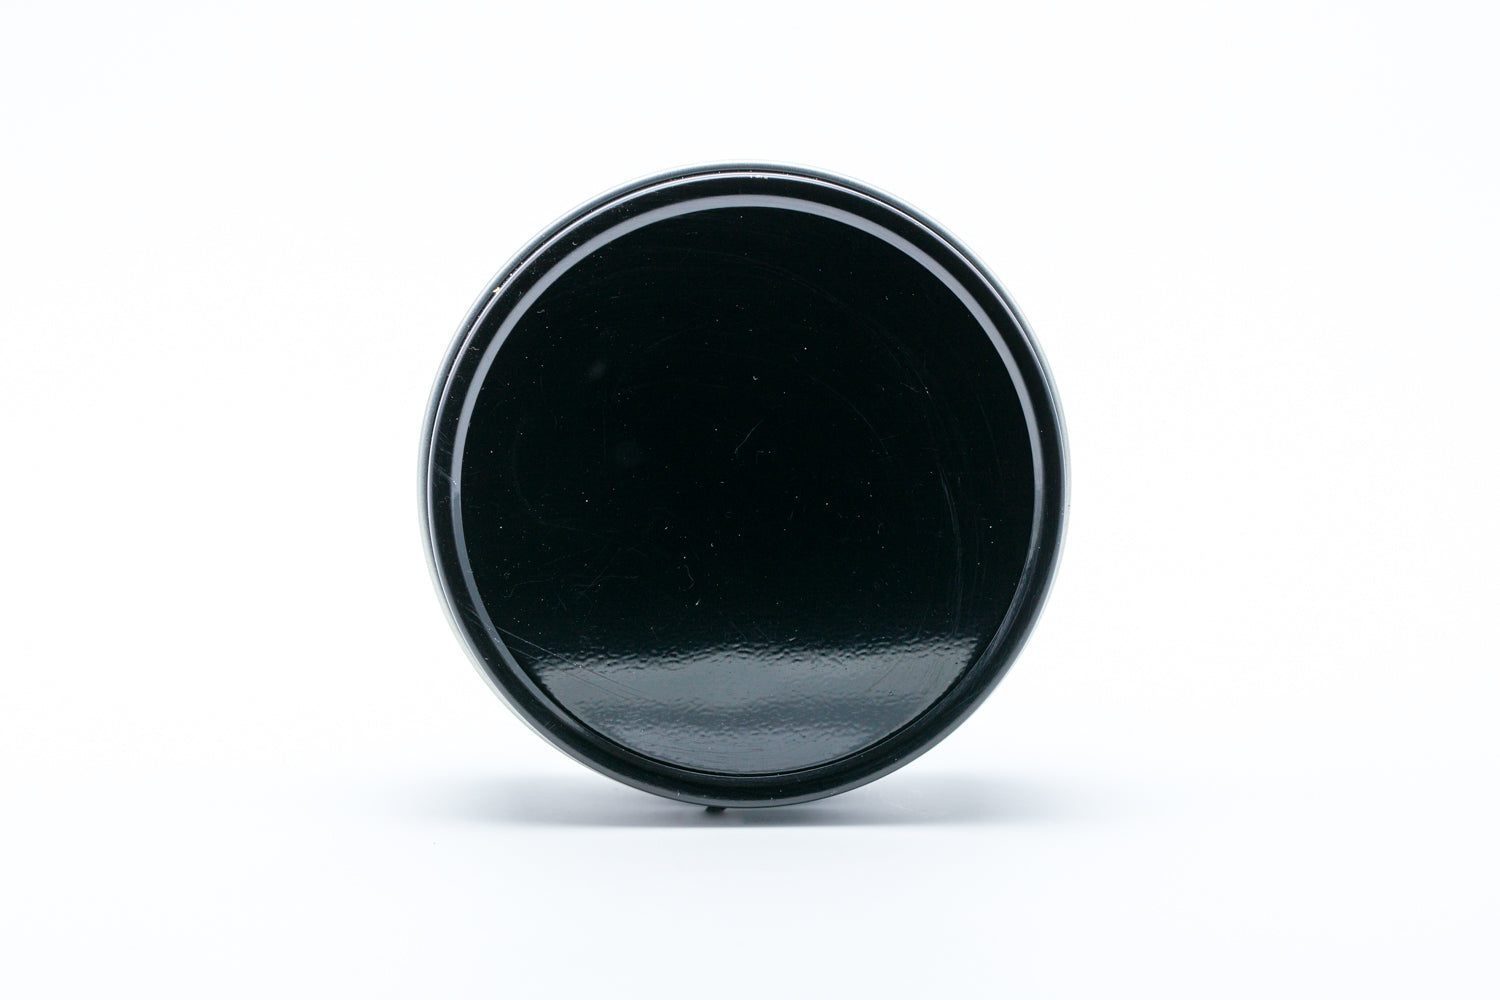 Shaving Soap Black Metal Container